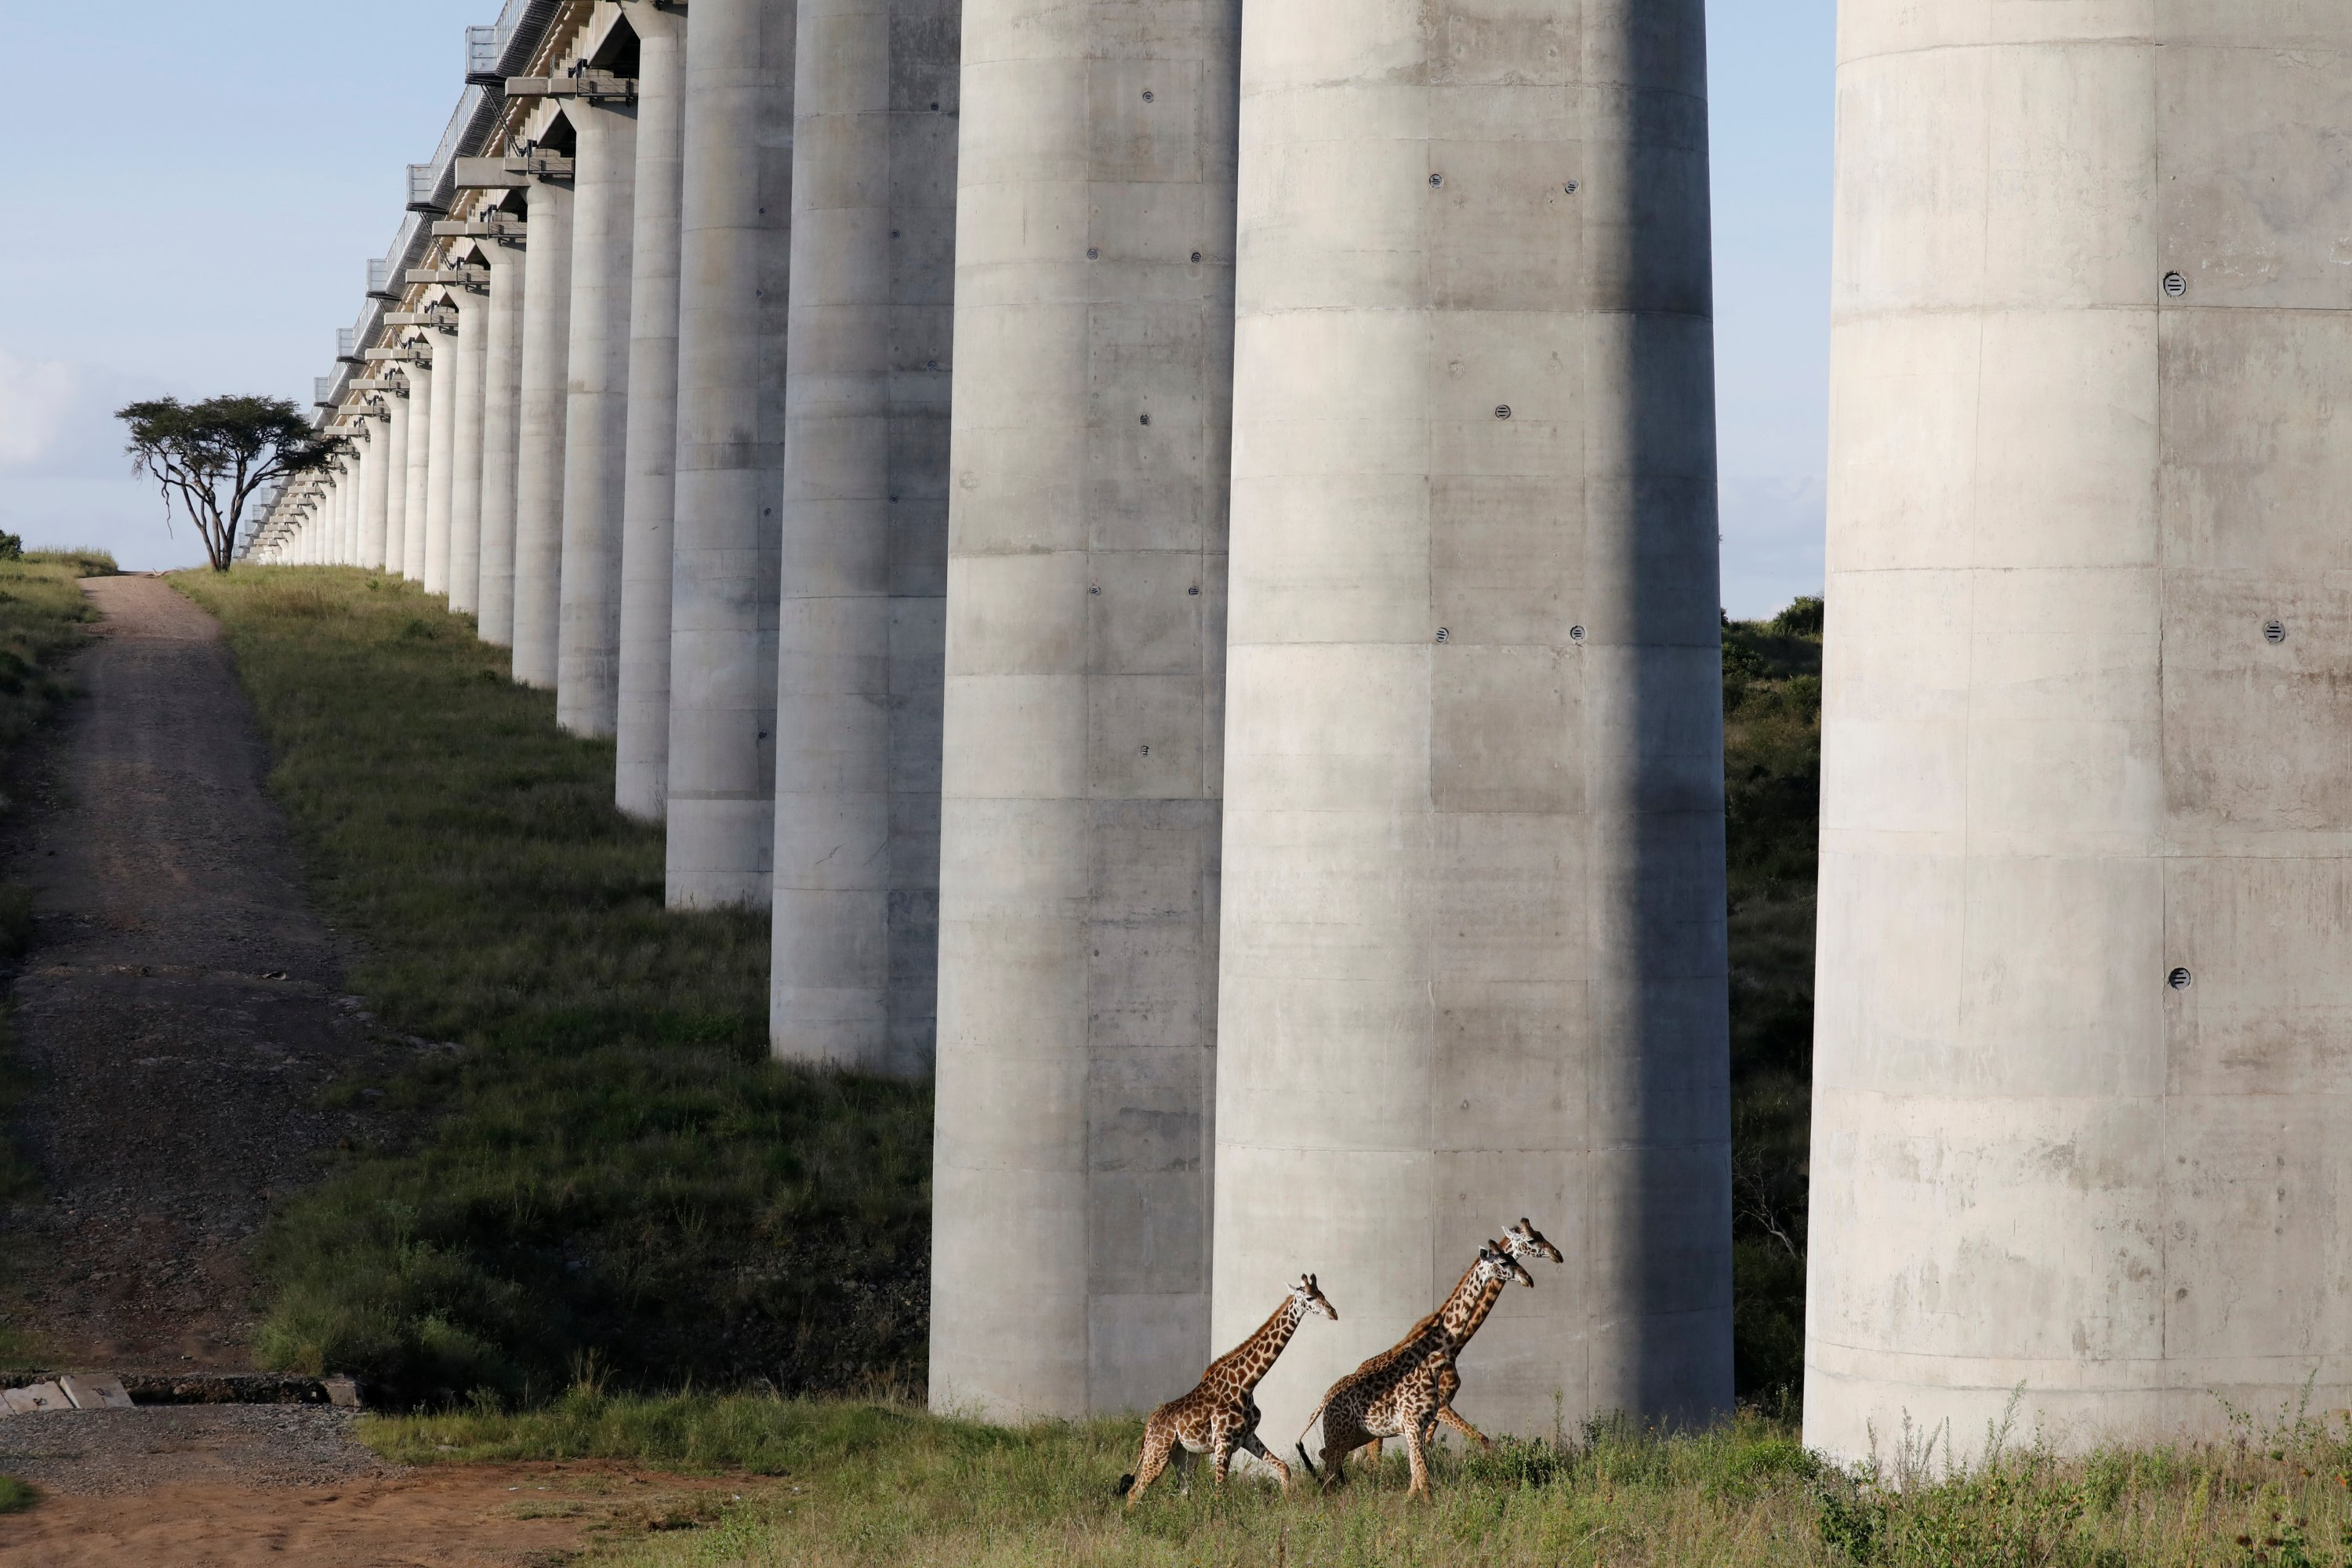 Giraffes cross under a bridge of the Standard Gauge Railway (SGR) line, inside the Nairobi National Park in Nairobi, Kenya, May 25, 2020. (Reuters Photo)